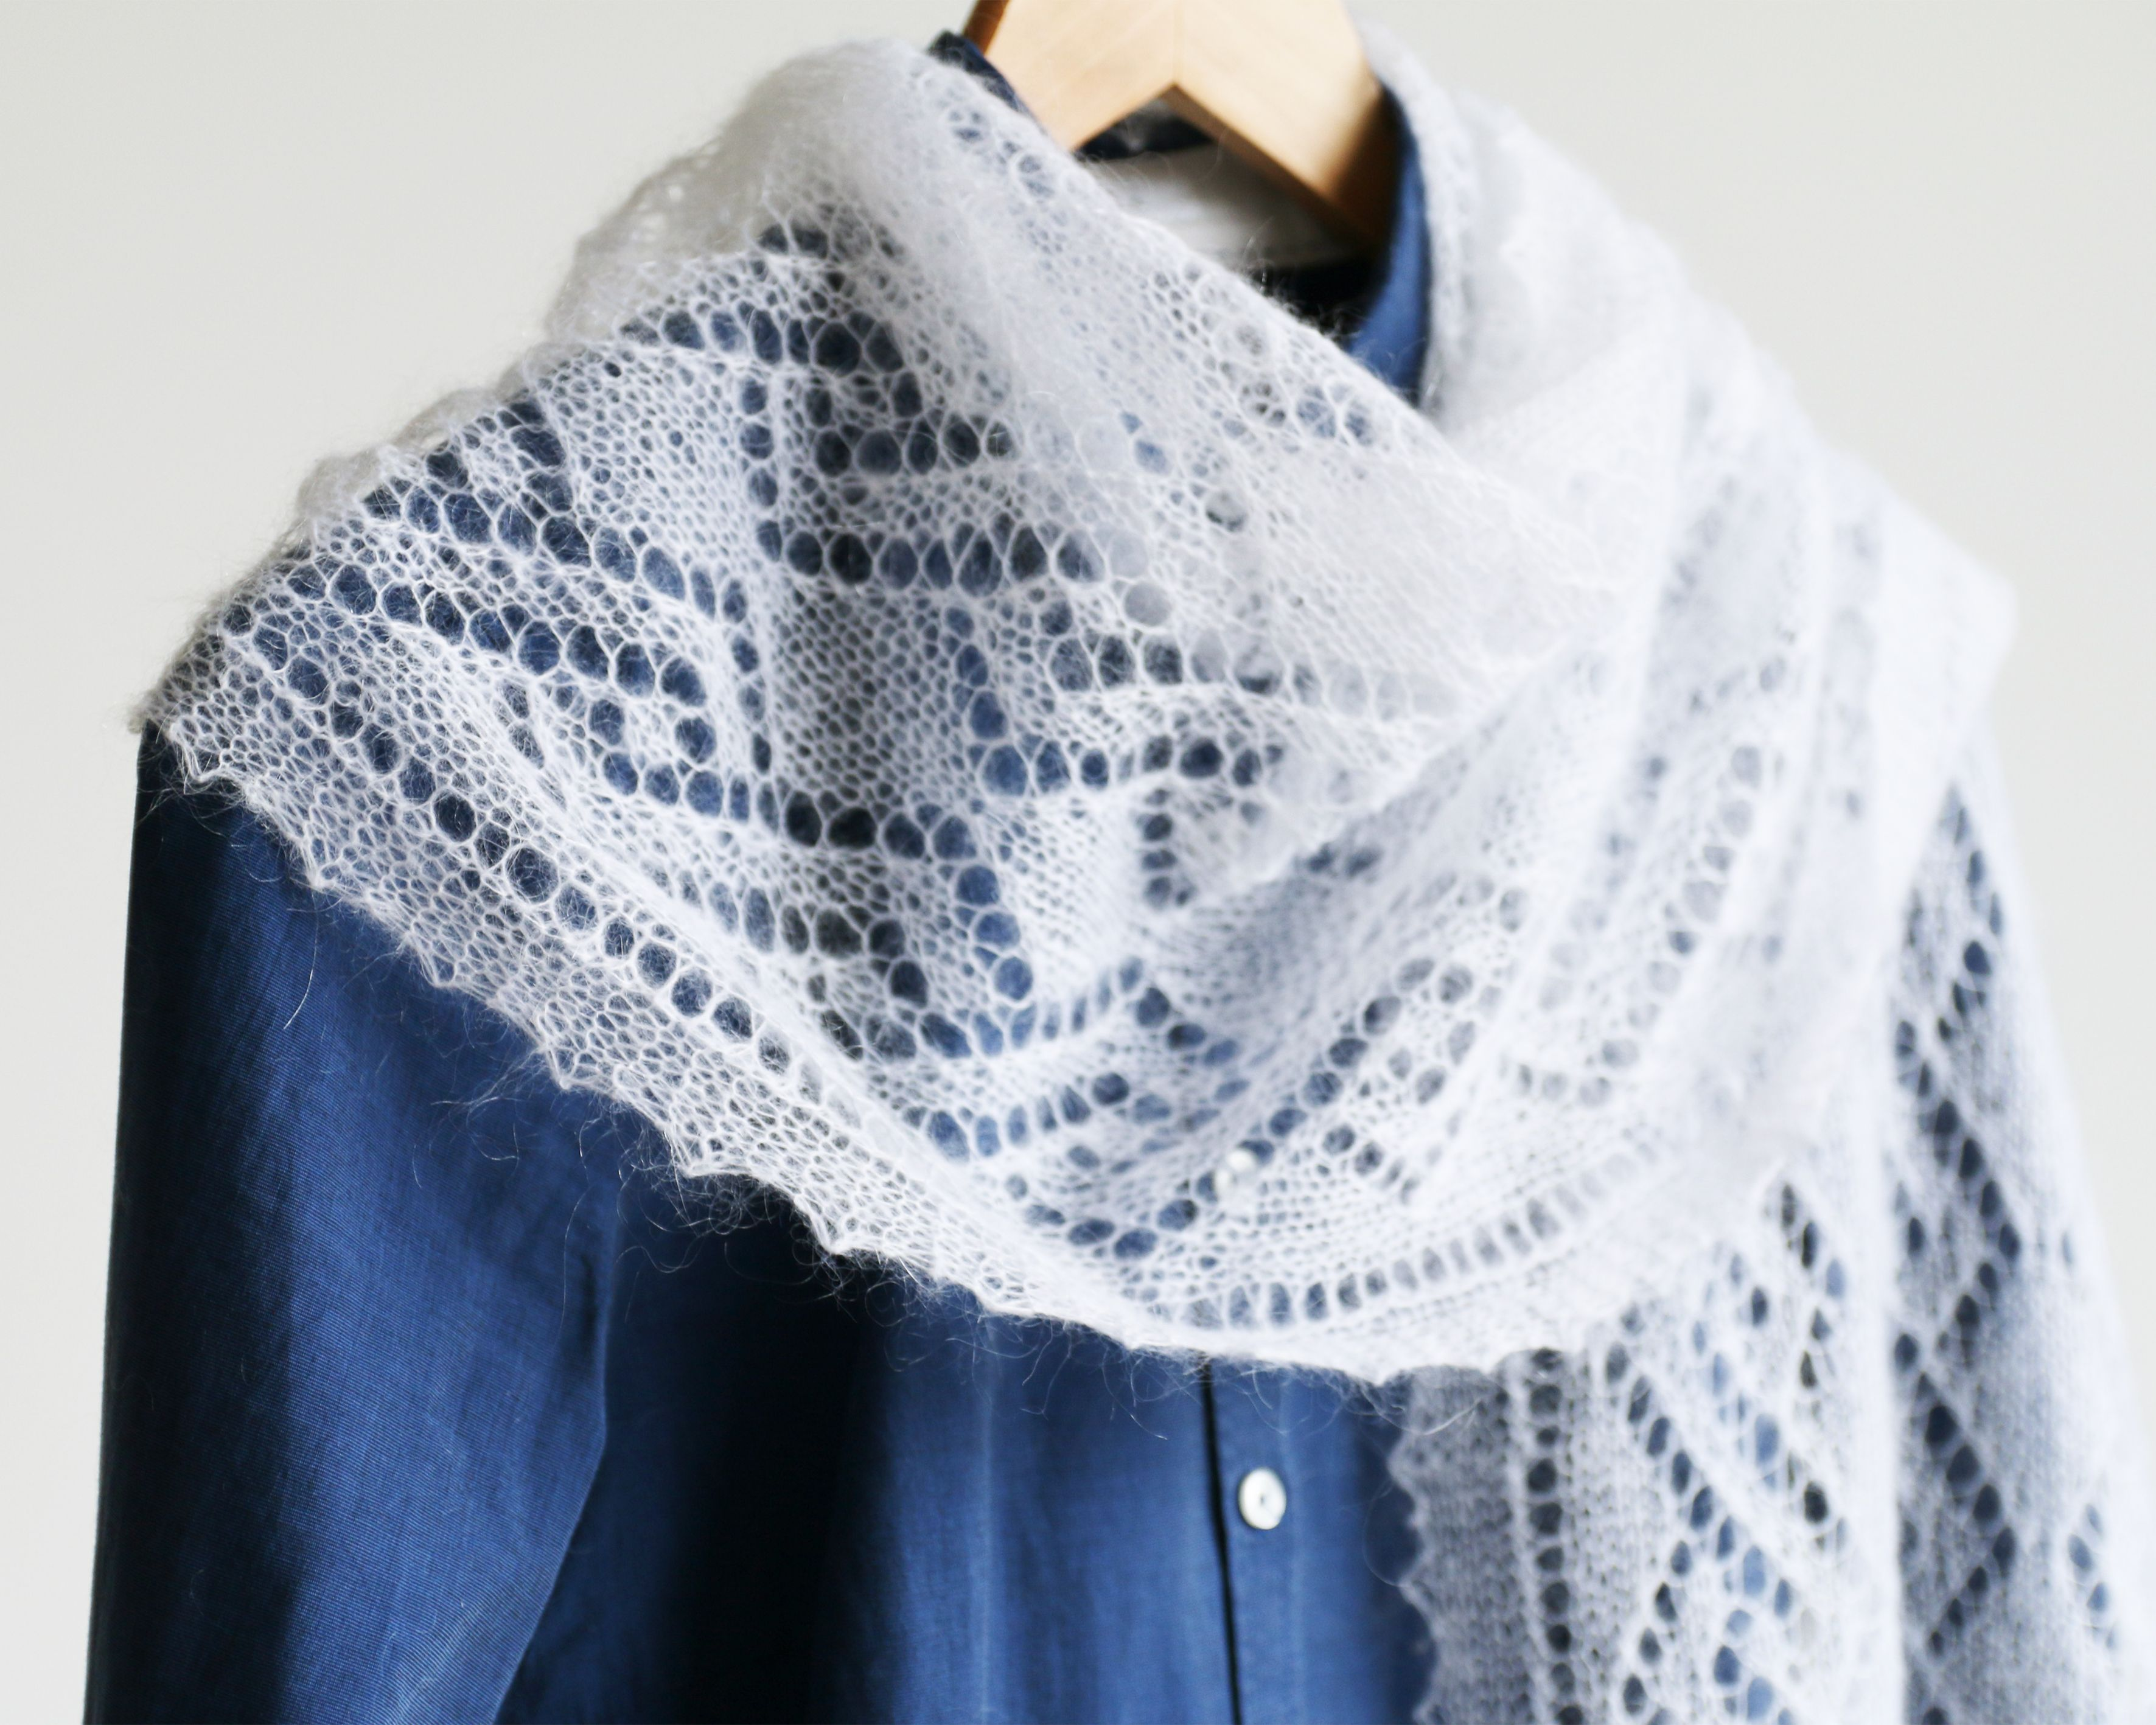 Thin Hand Knitted Lace Mohair Shawl with Twisting Pattern   Done By ...